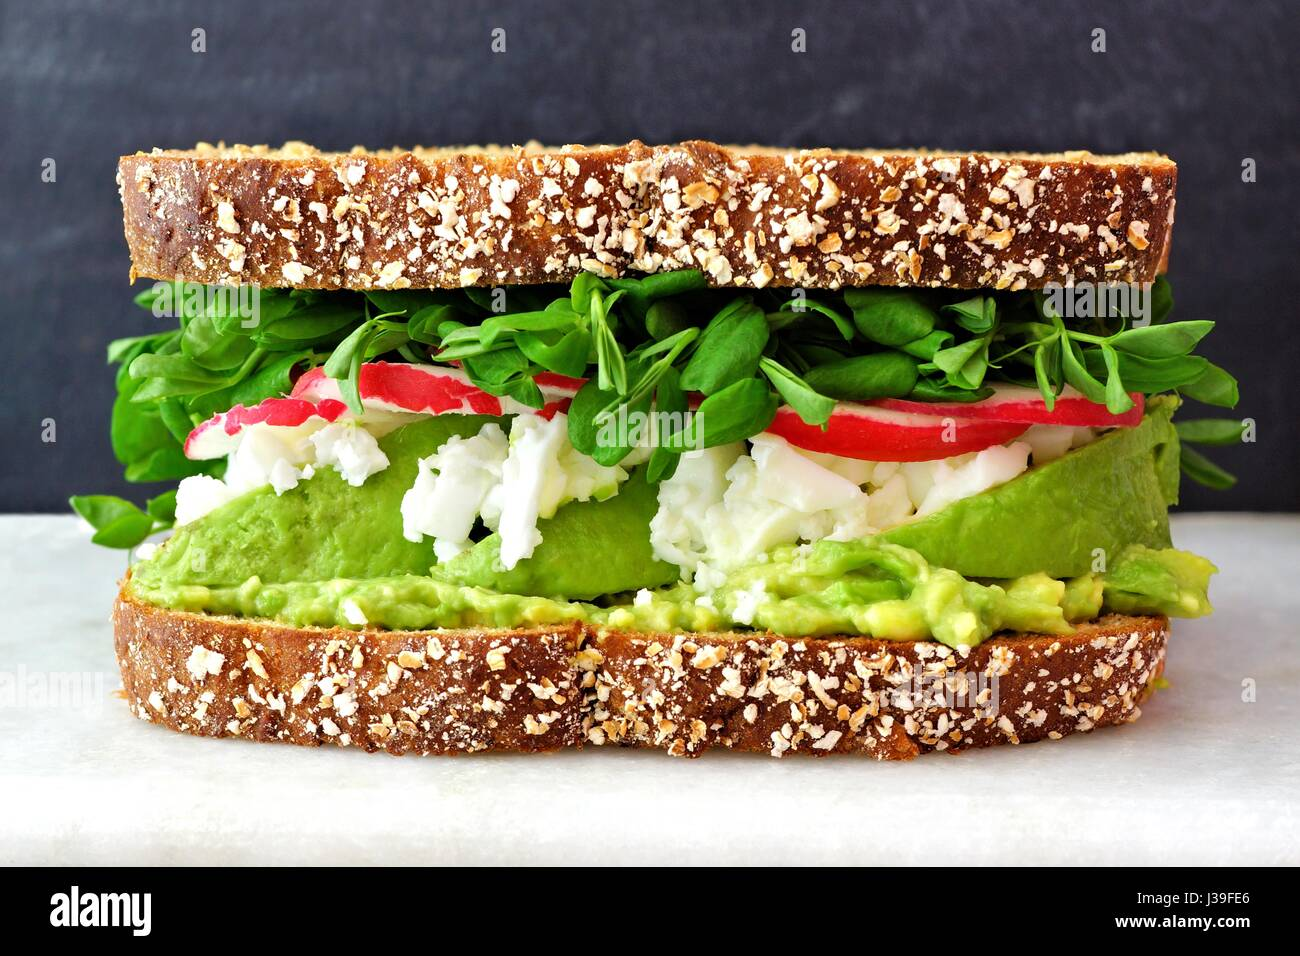 Superfood sandwich with whole grain bread, avocado, egg whites, radishes and pea shoots on marble against a black - Stock Image